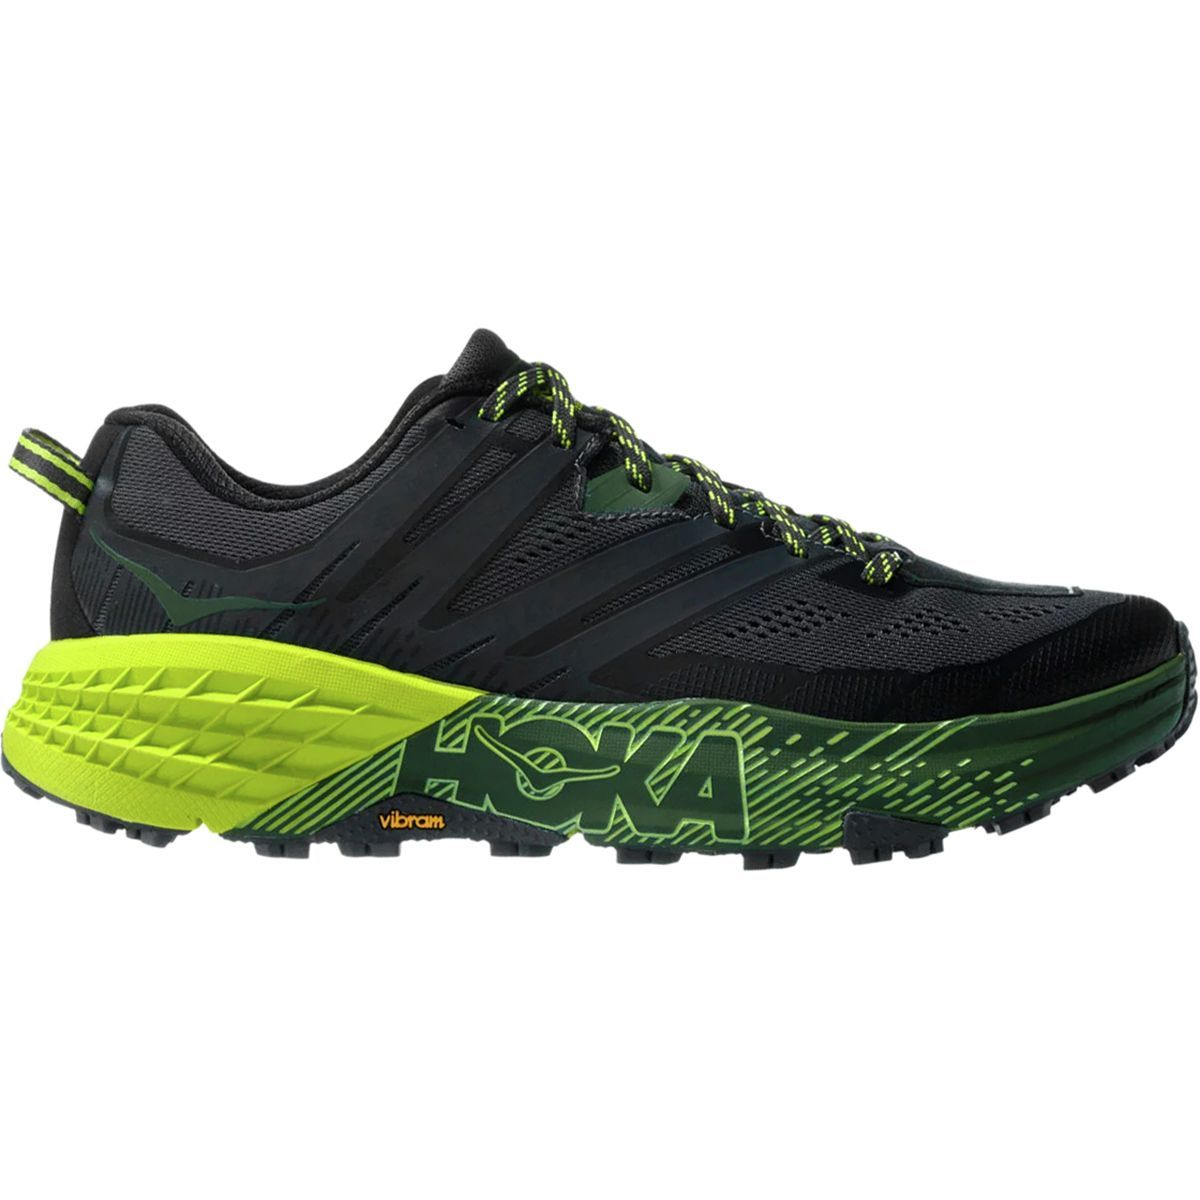 Running shoes for men, Running shoes